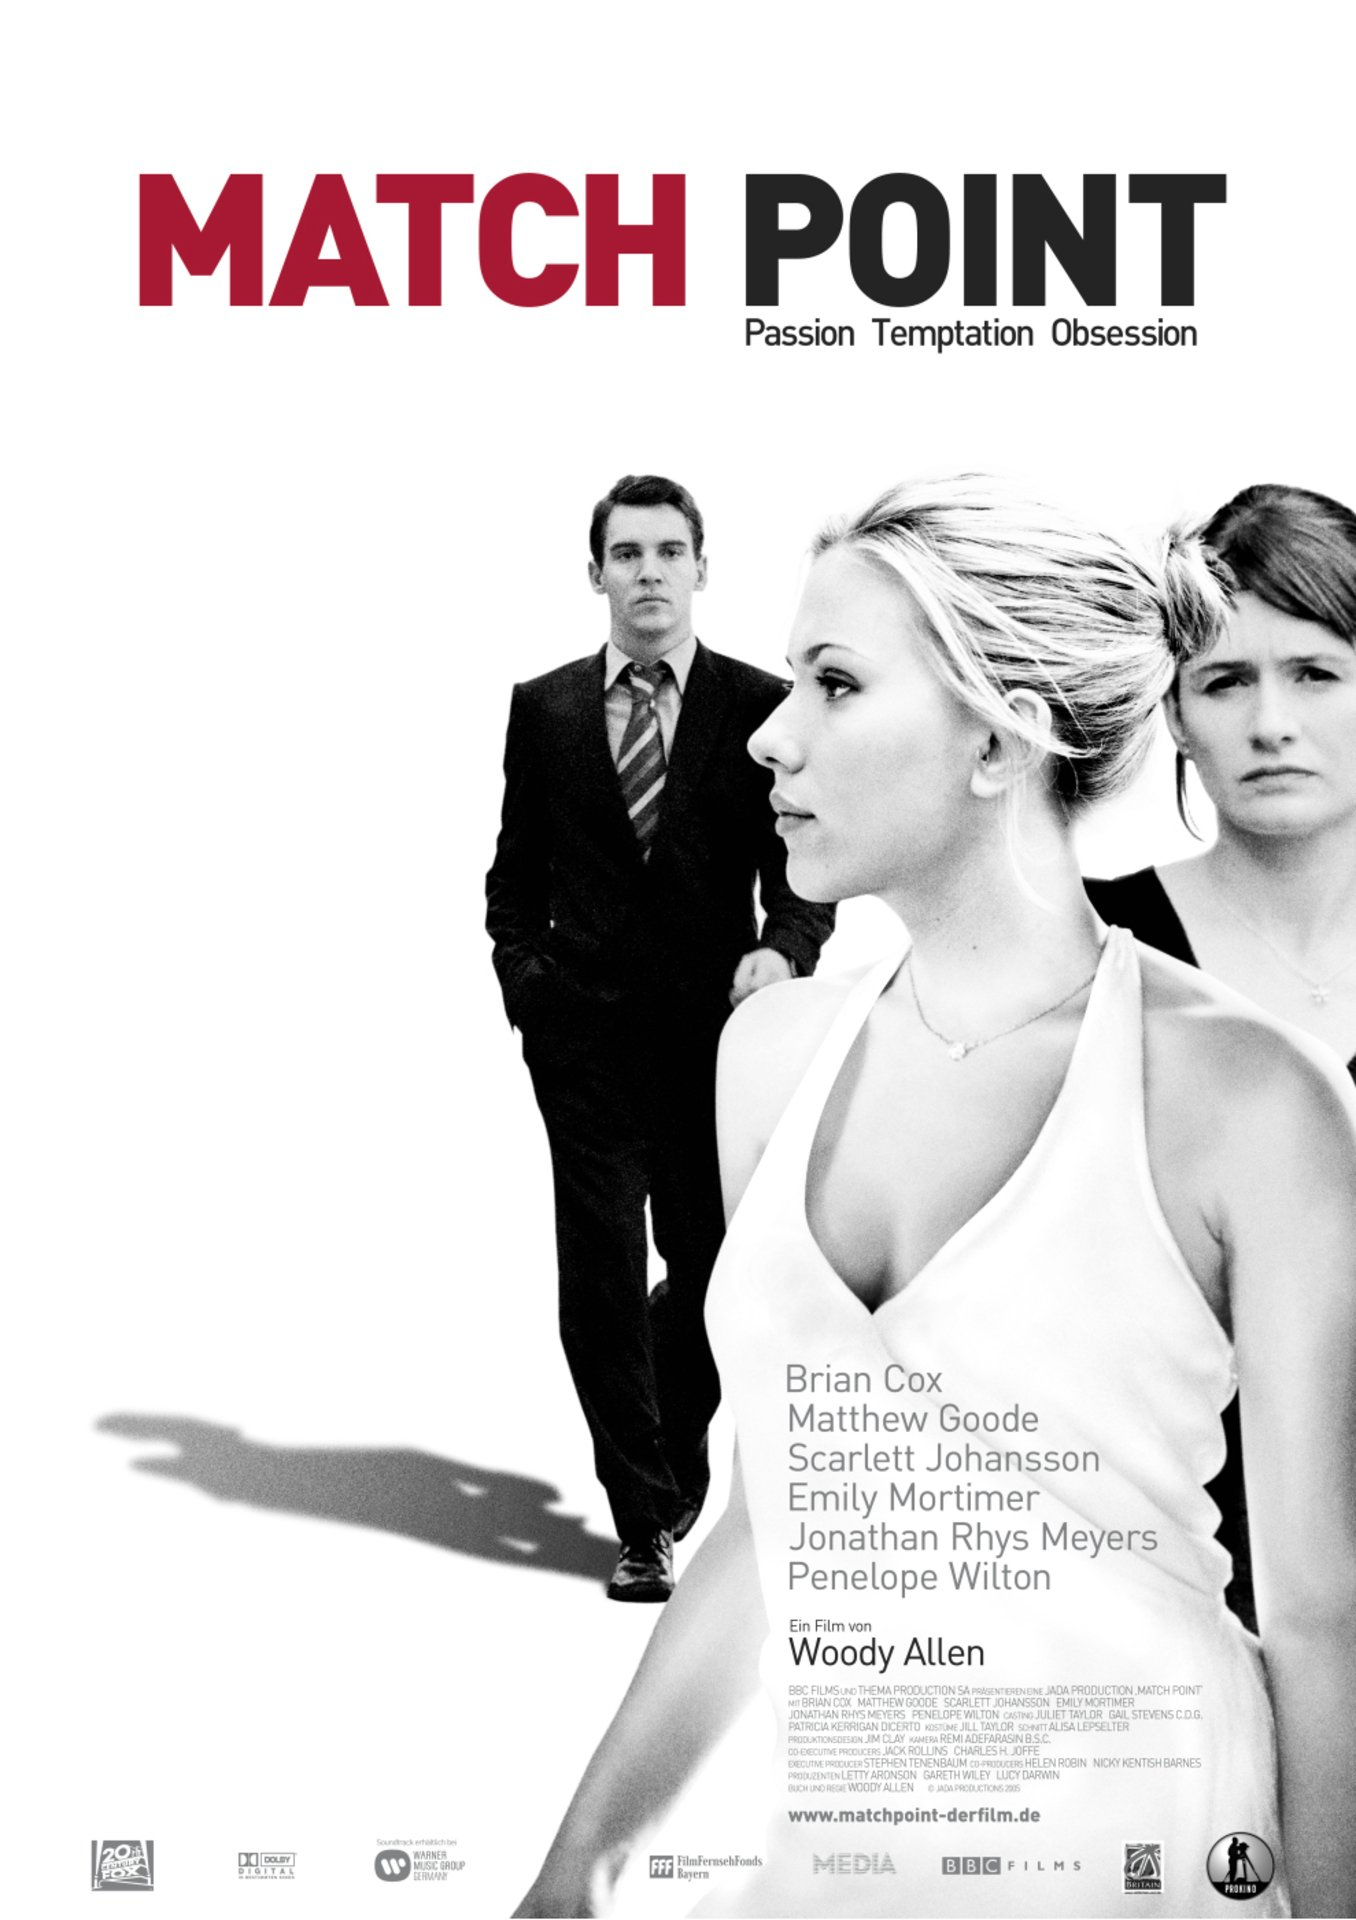 Match Point Tennis movie for COVID-19